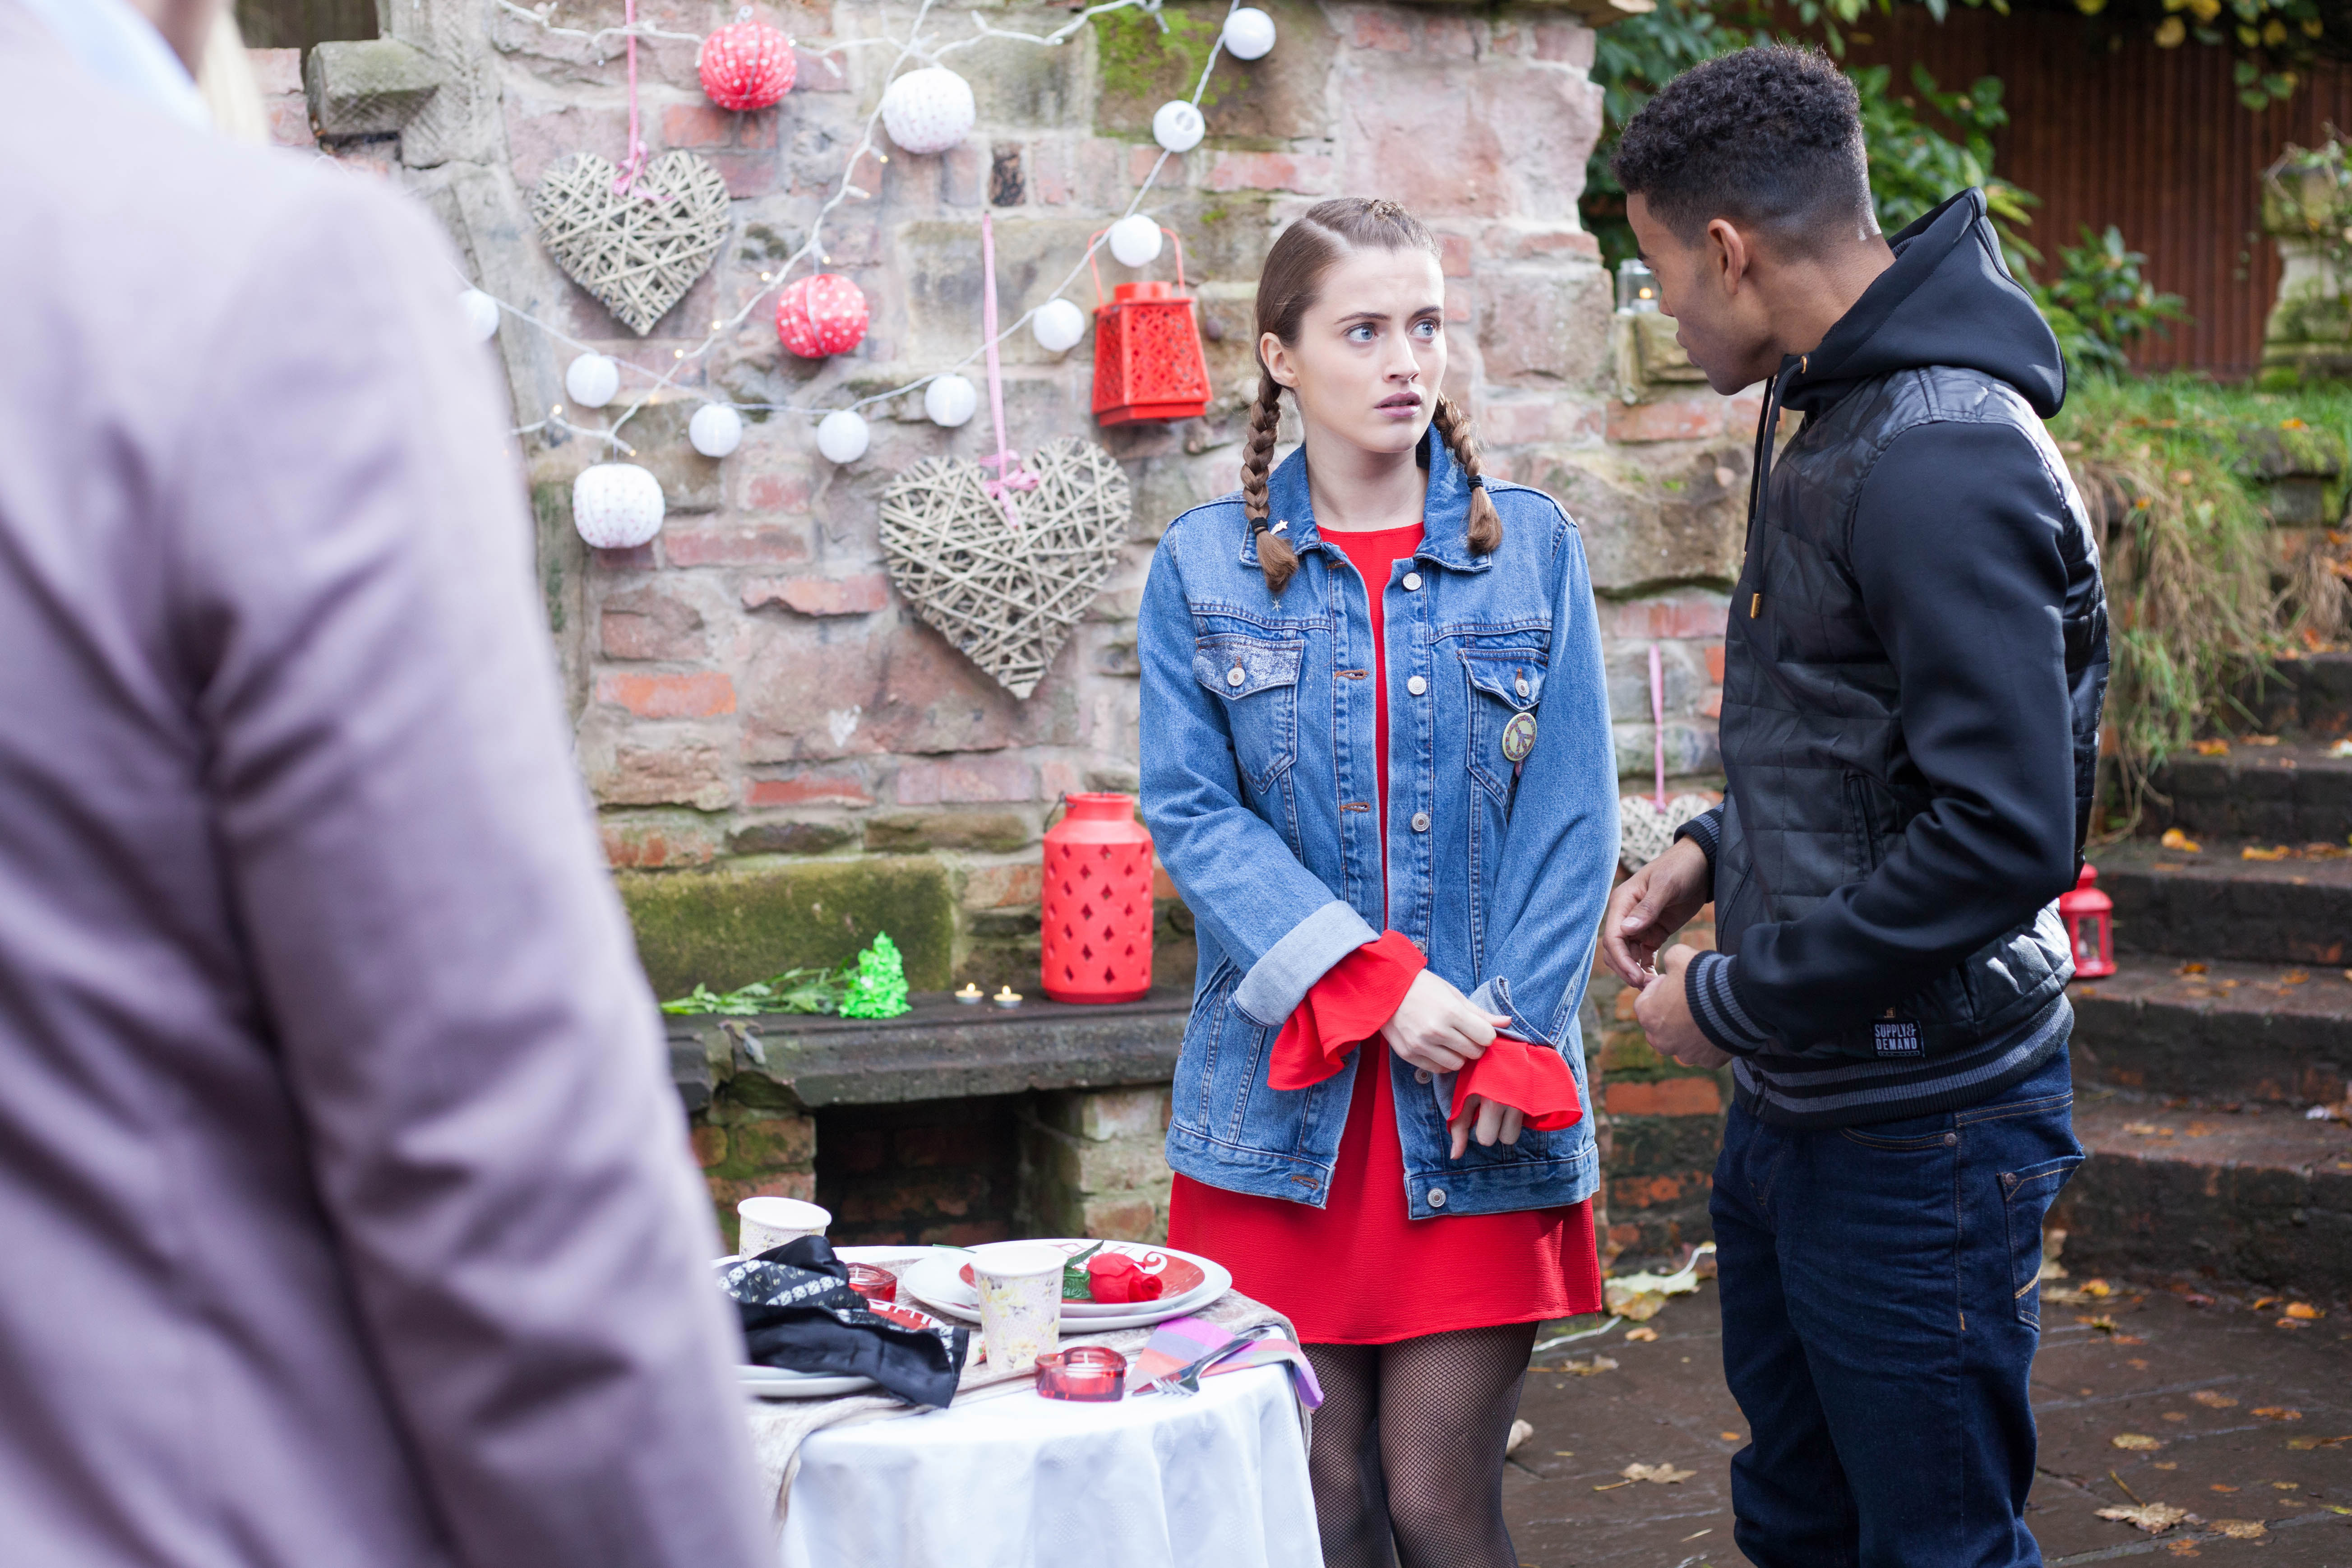 Hollyoaks spoilers: Lily collapses after self-harming – but will Prince be there to support her?